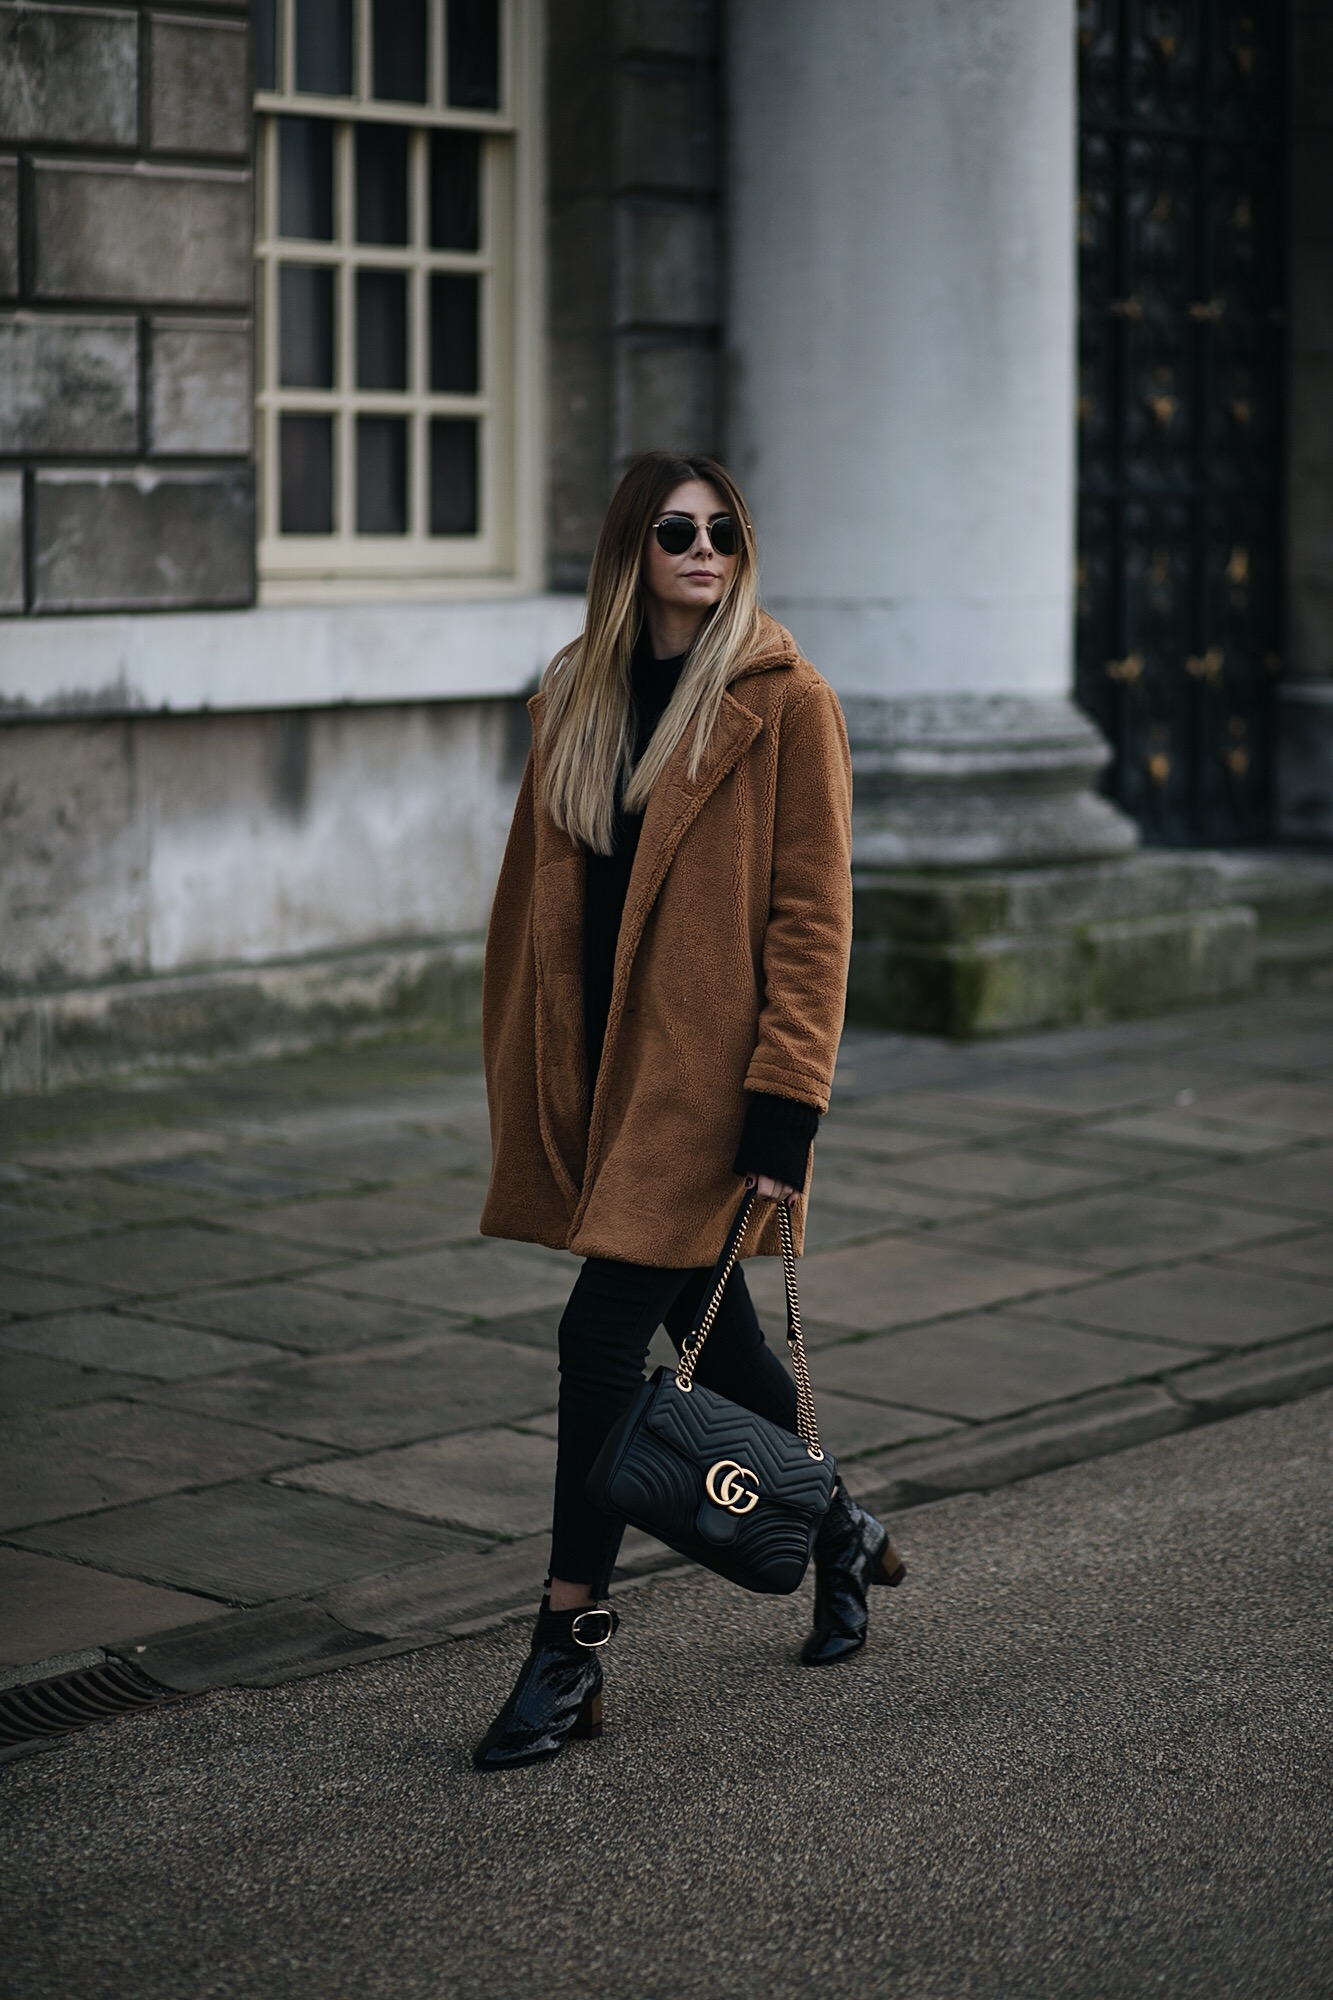 Emma Hill wears camel brown teddy bear coat, Gucci medium black leather Marmont bag, black skinny frayed hem jeans, black patent ankle boots, winter outfit